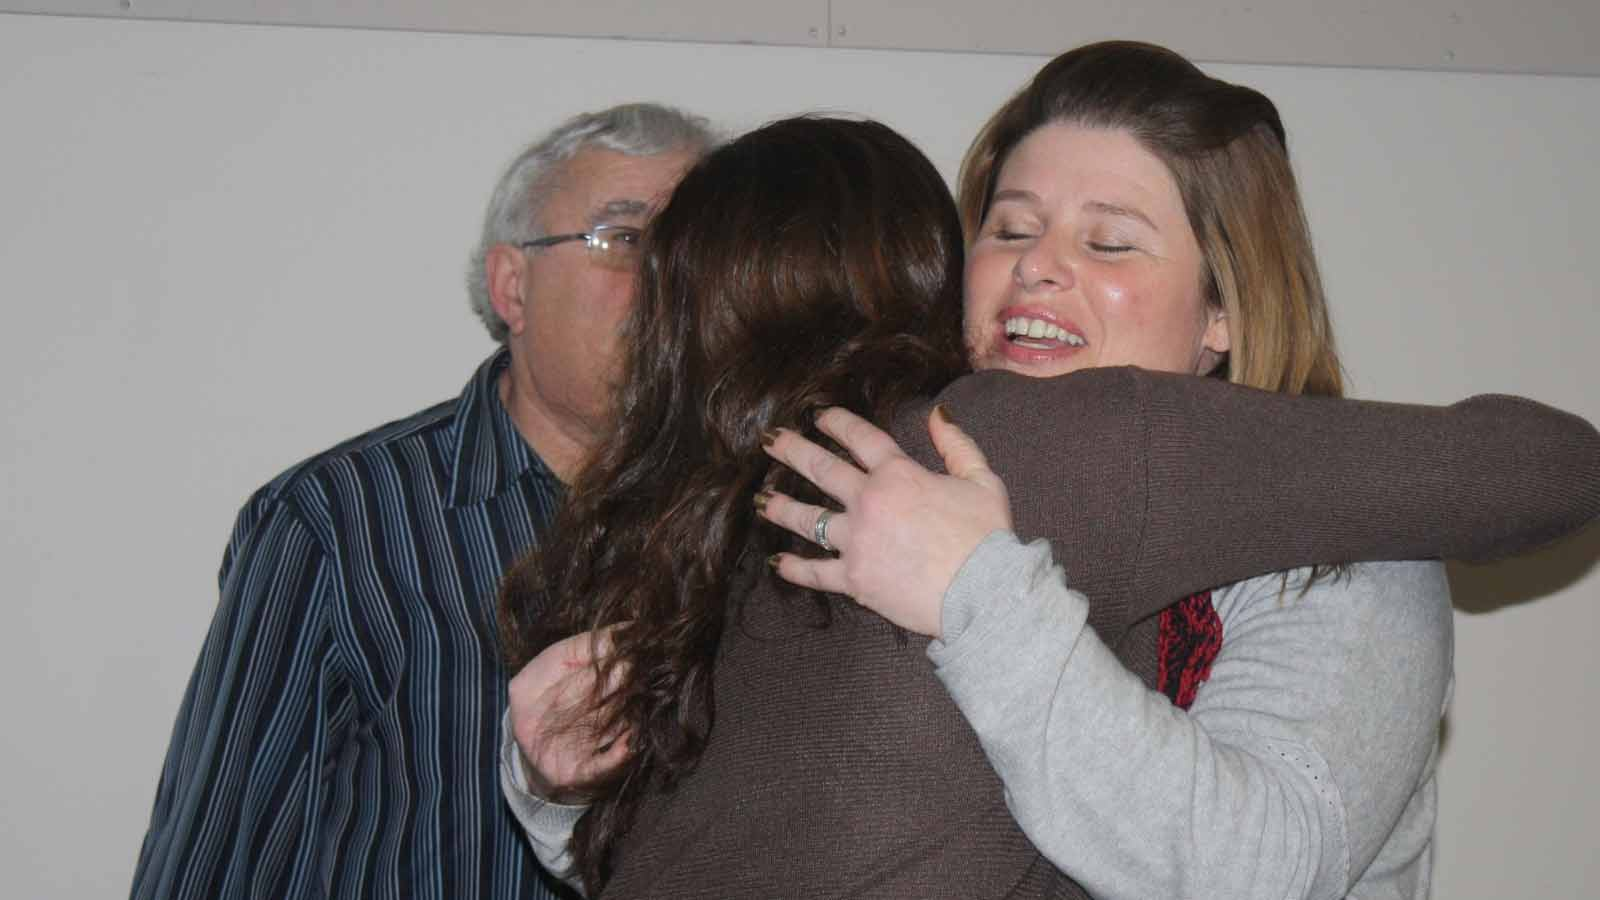 Woman with blonde hair hugs person with long brown hair as an older man looks on